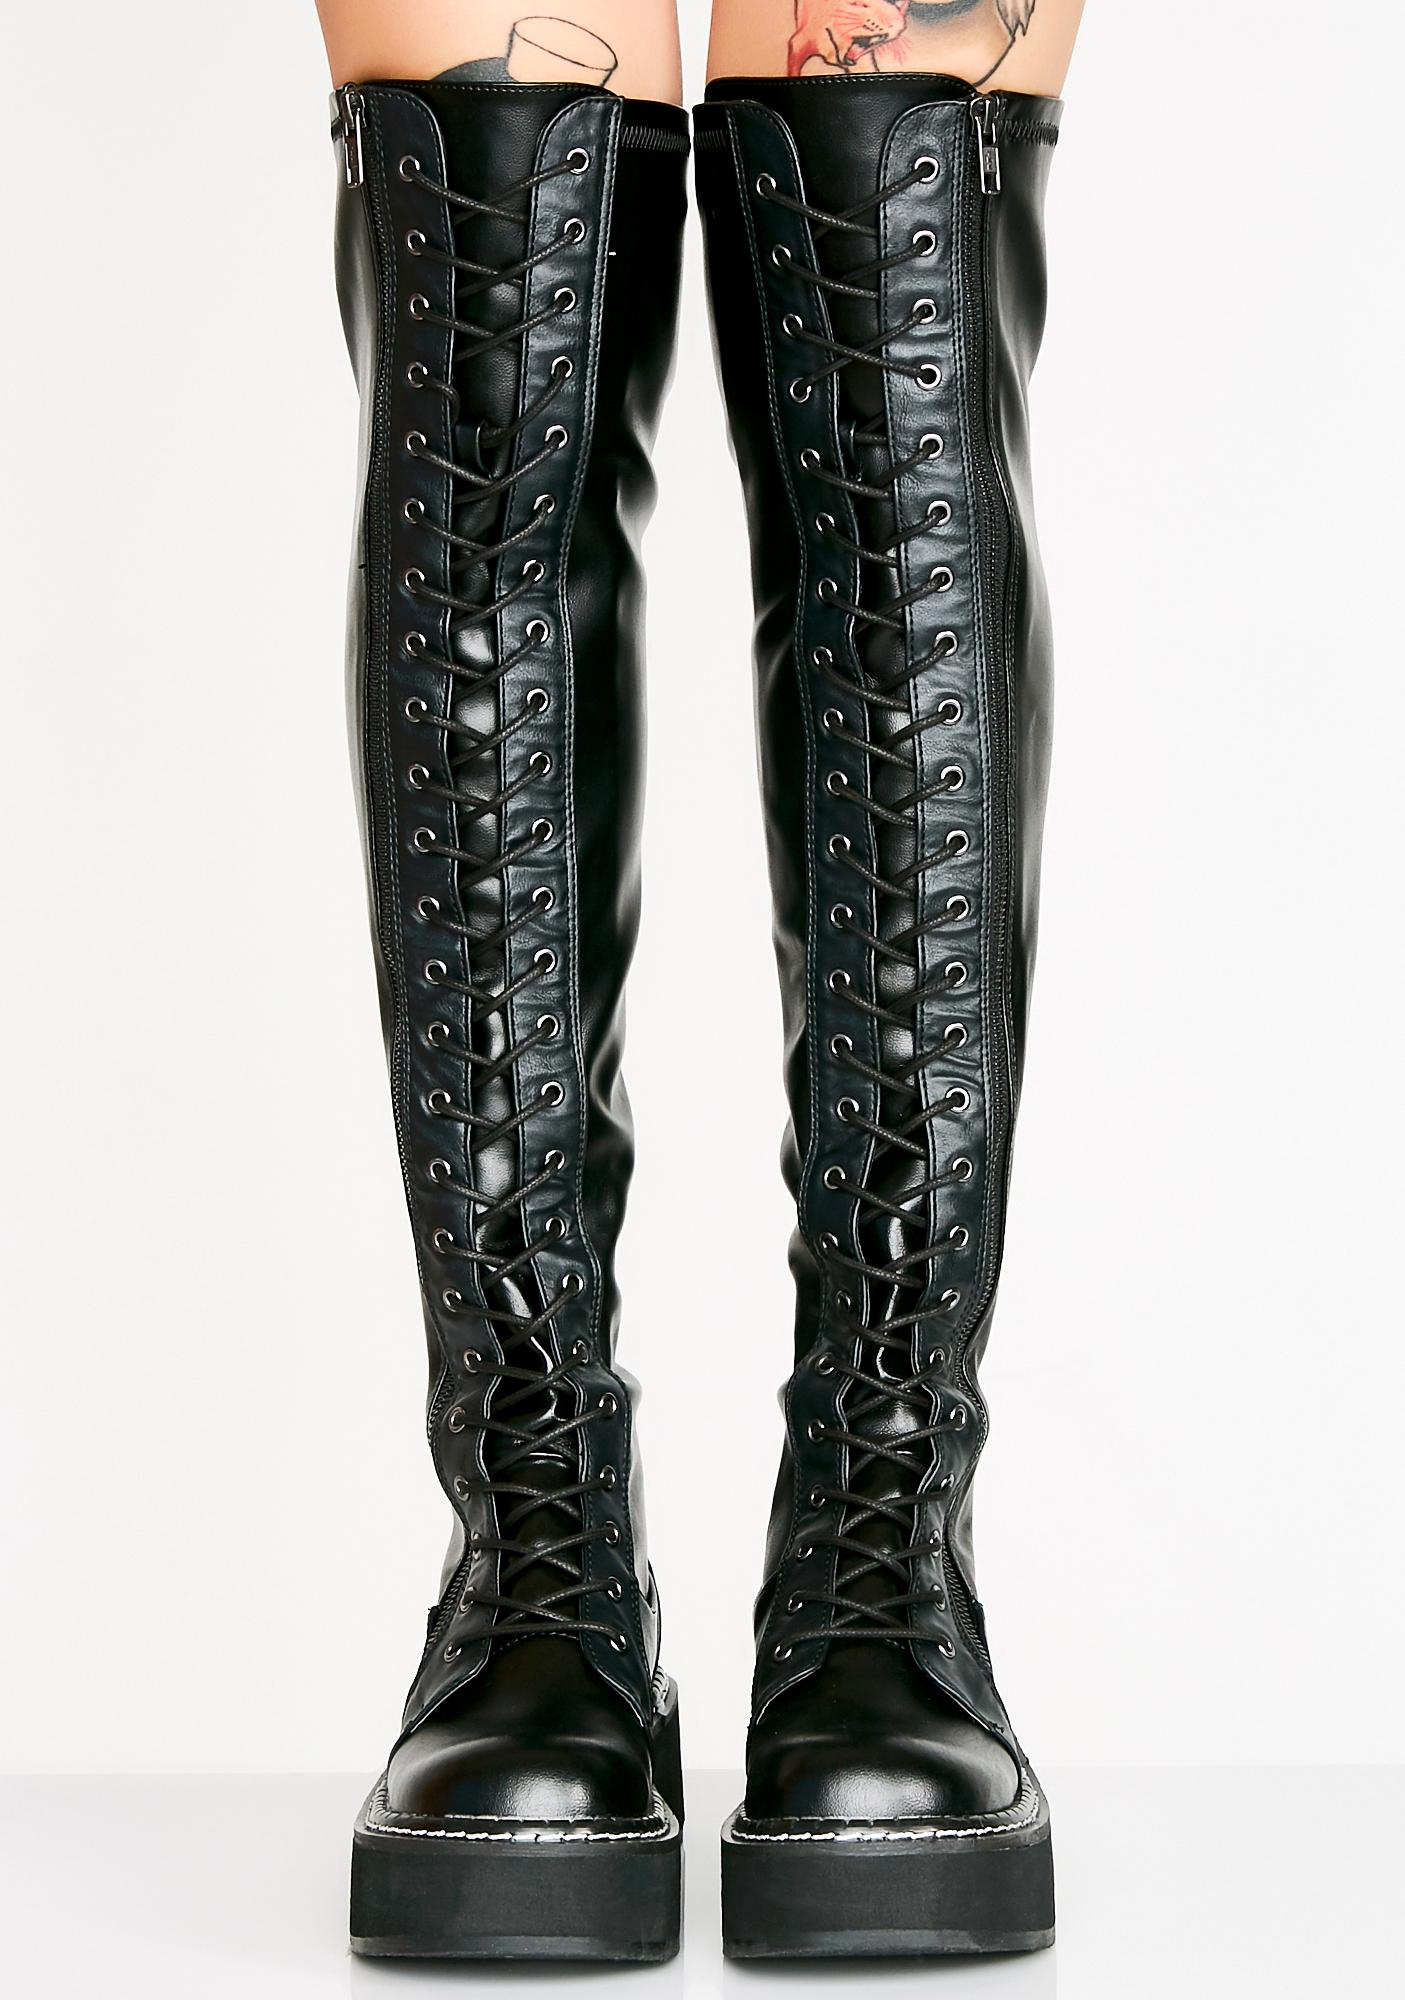 c0627b1aeddd3 Demonia Hellraiser Lace-Up Boots | Dolls Kill